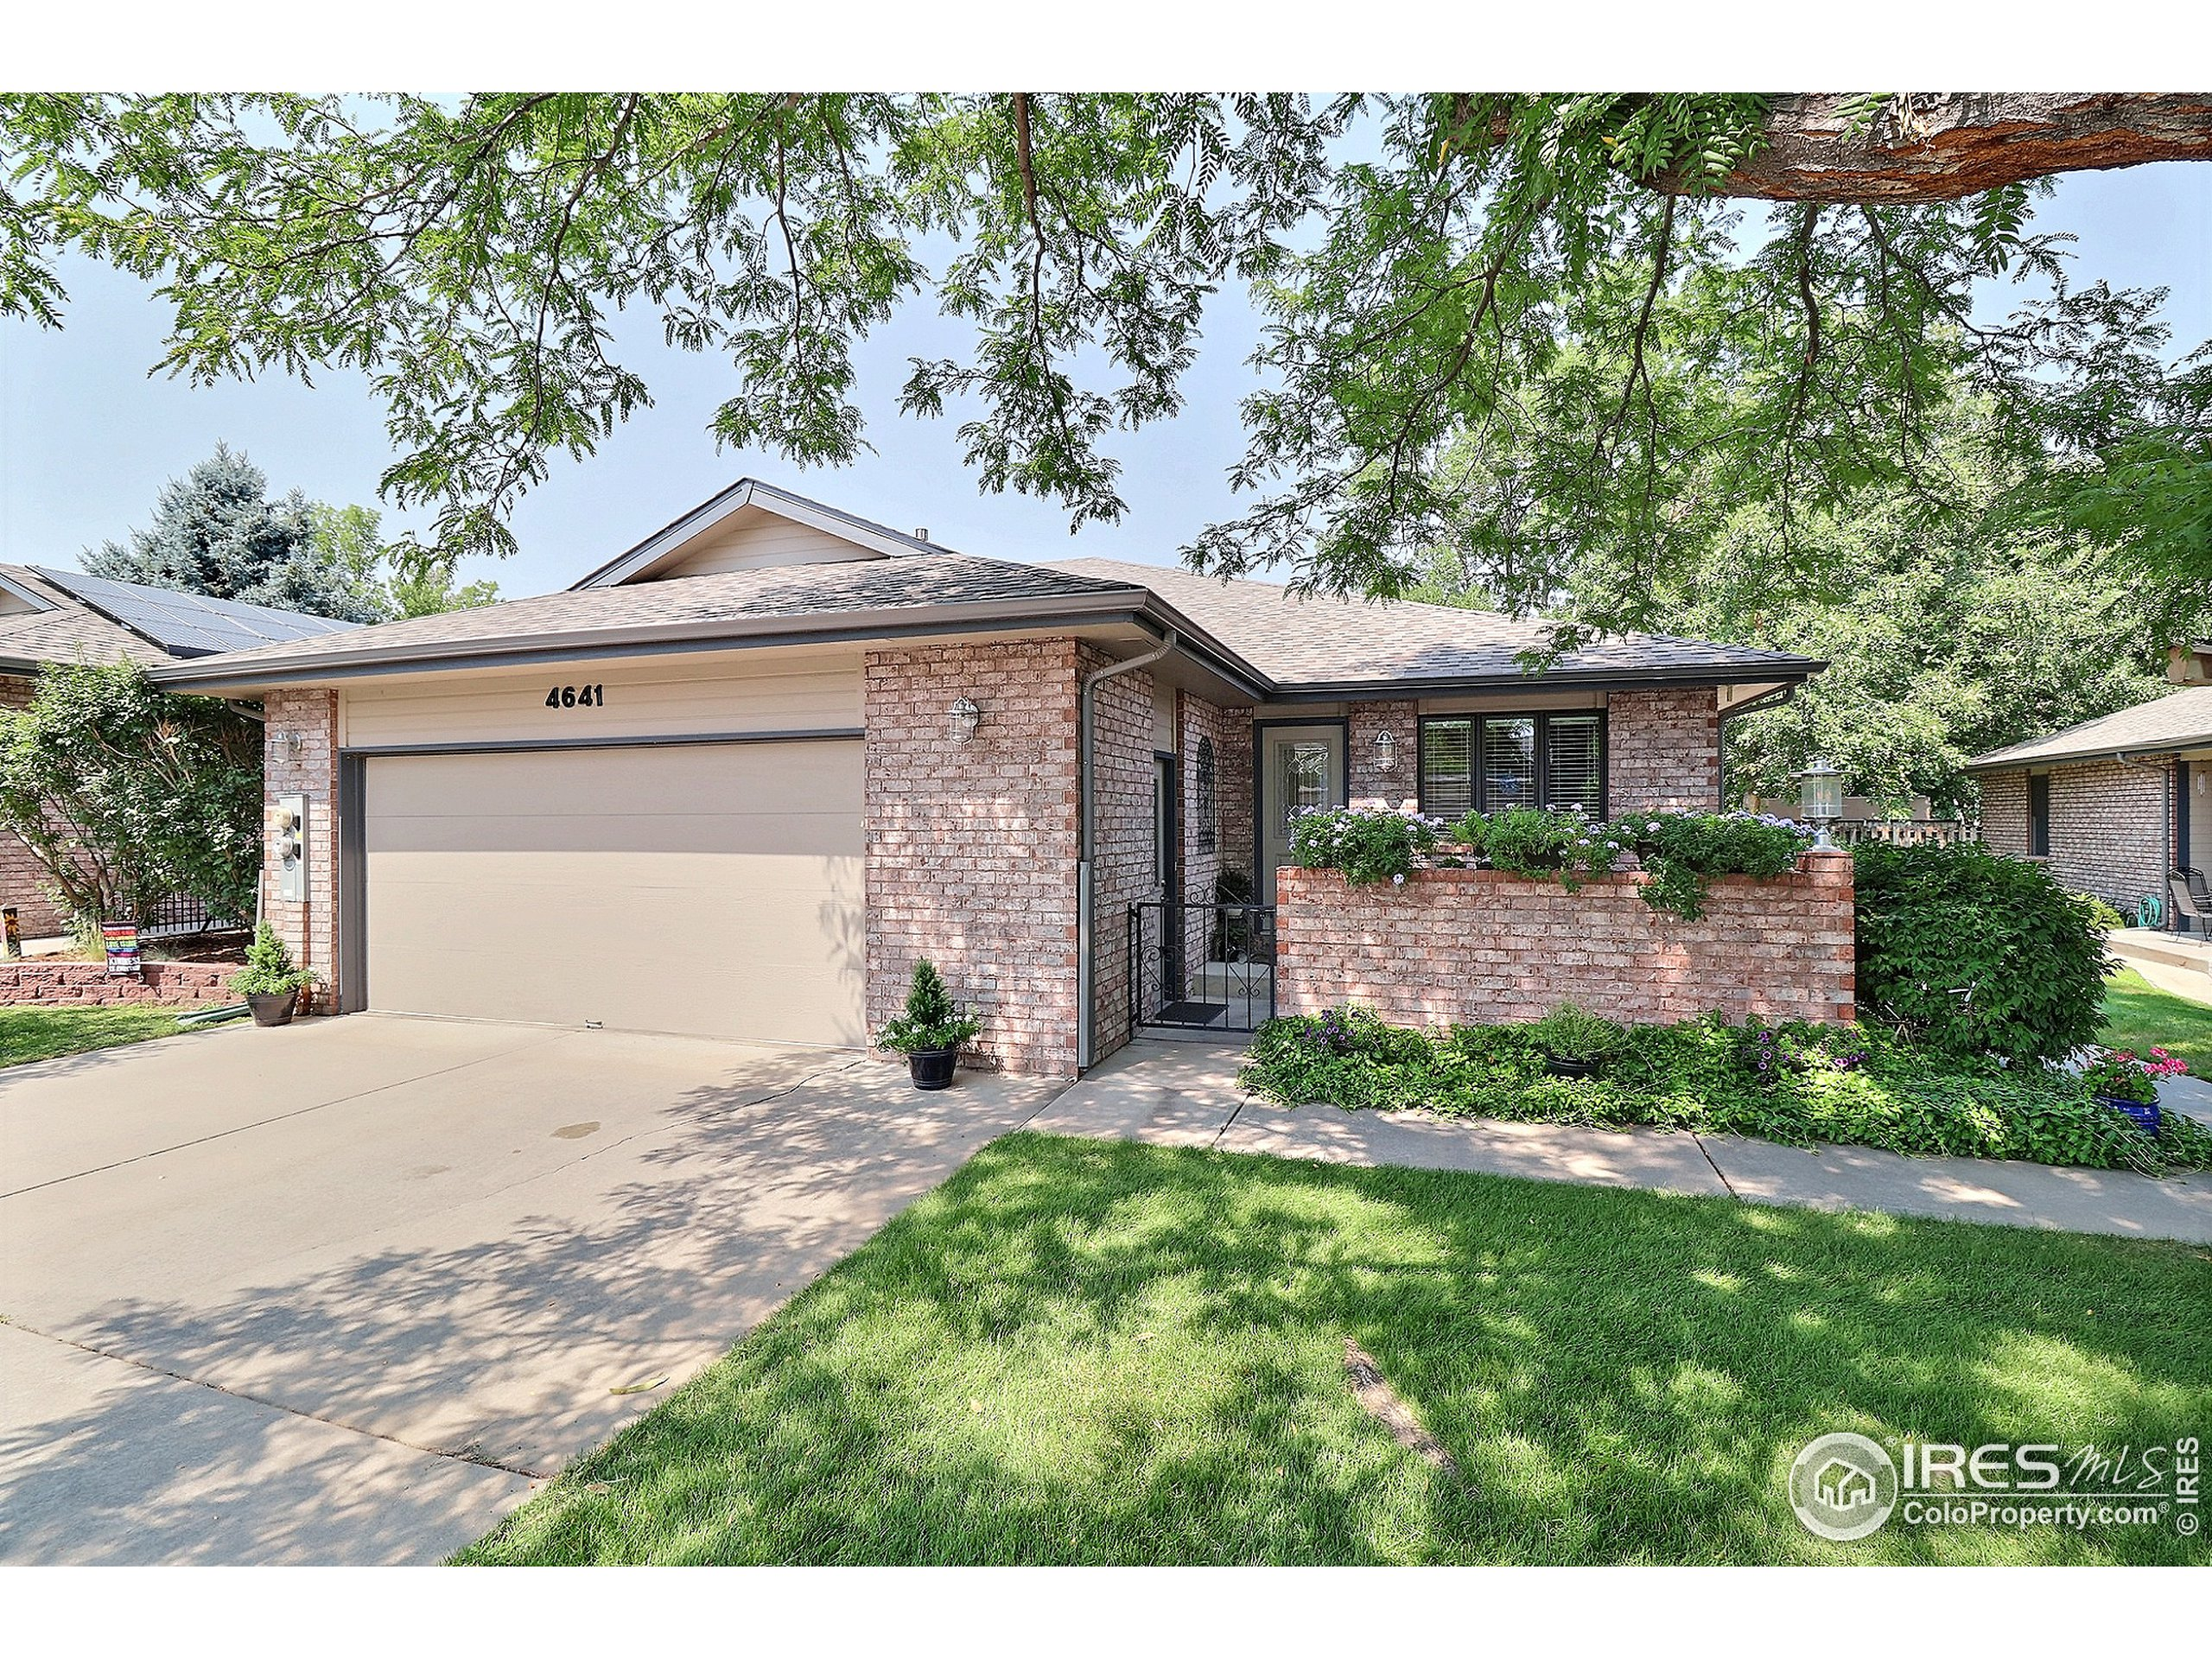 Great Price, Great Home, All Brick with Attached 2-Car Garage.  Come and See It Today!